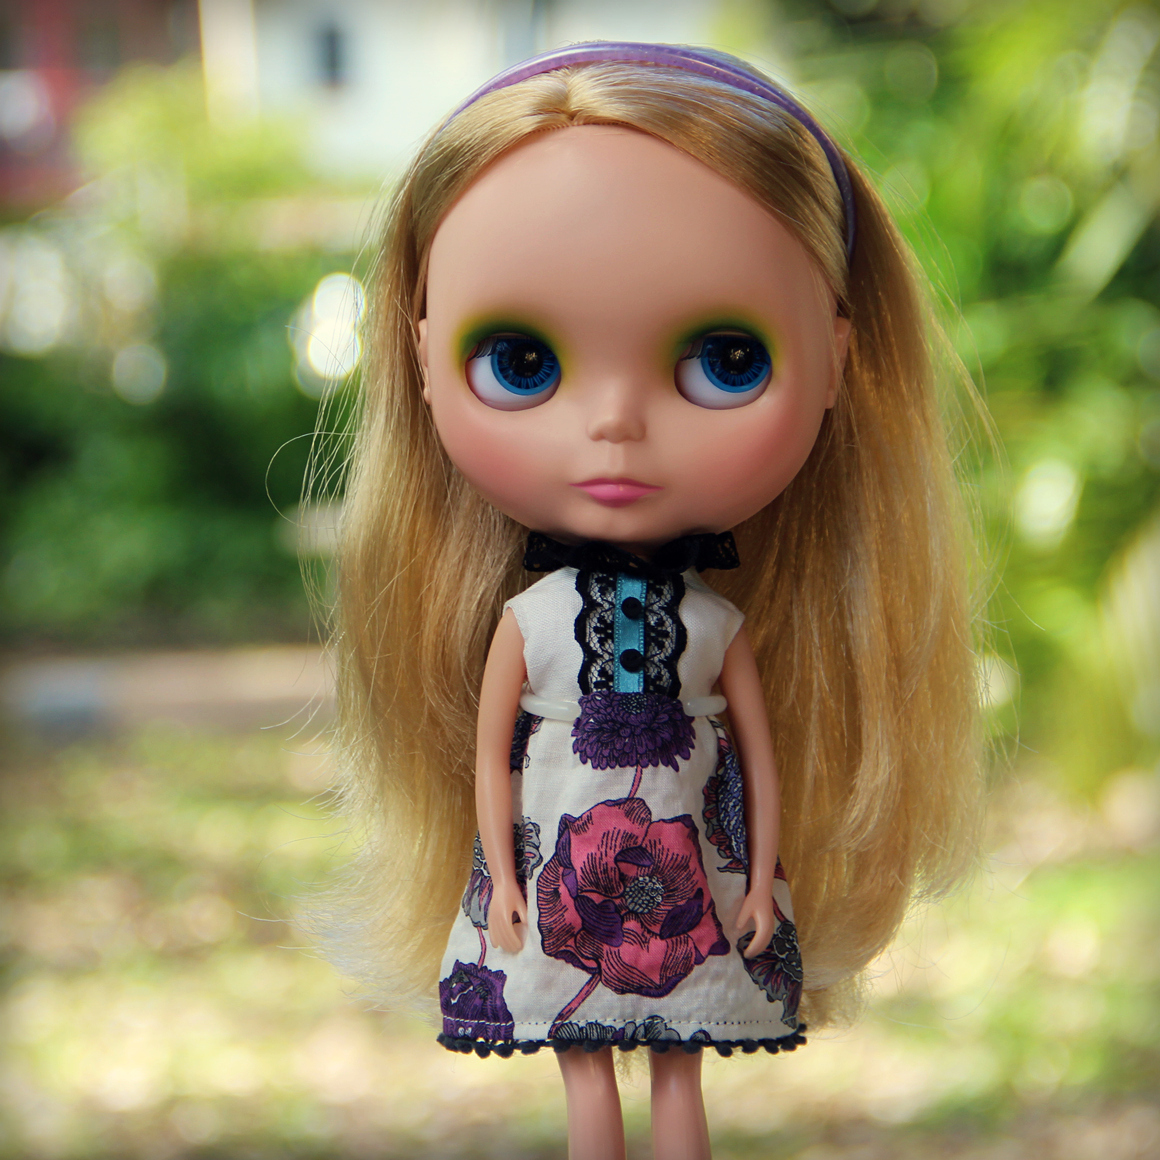 The Explorers Collection: Exotica No.2 dress for Blythe dolls